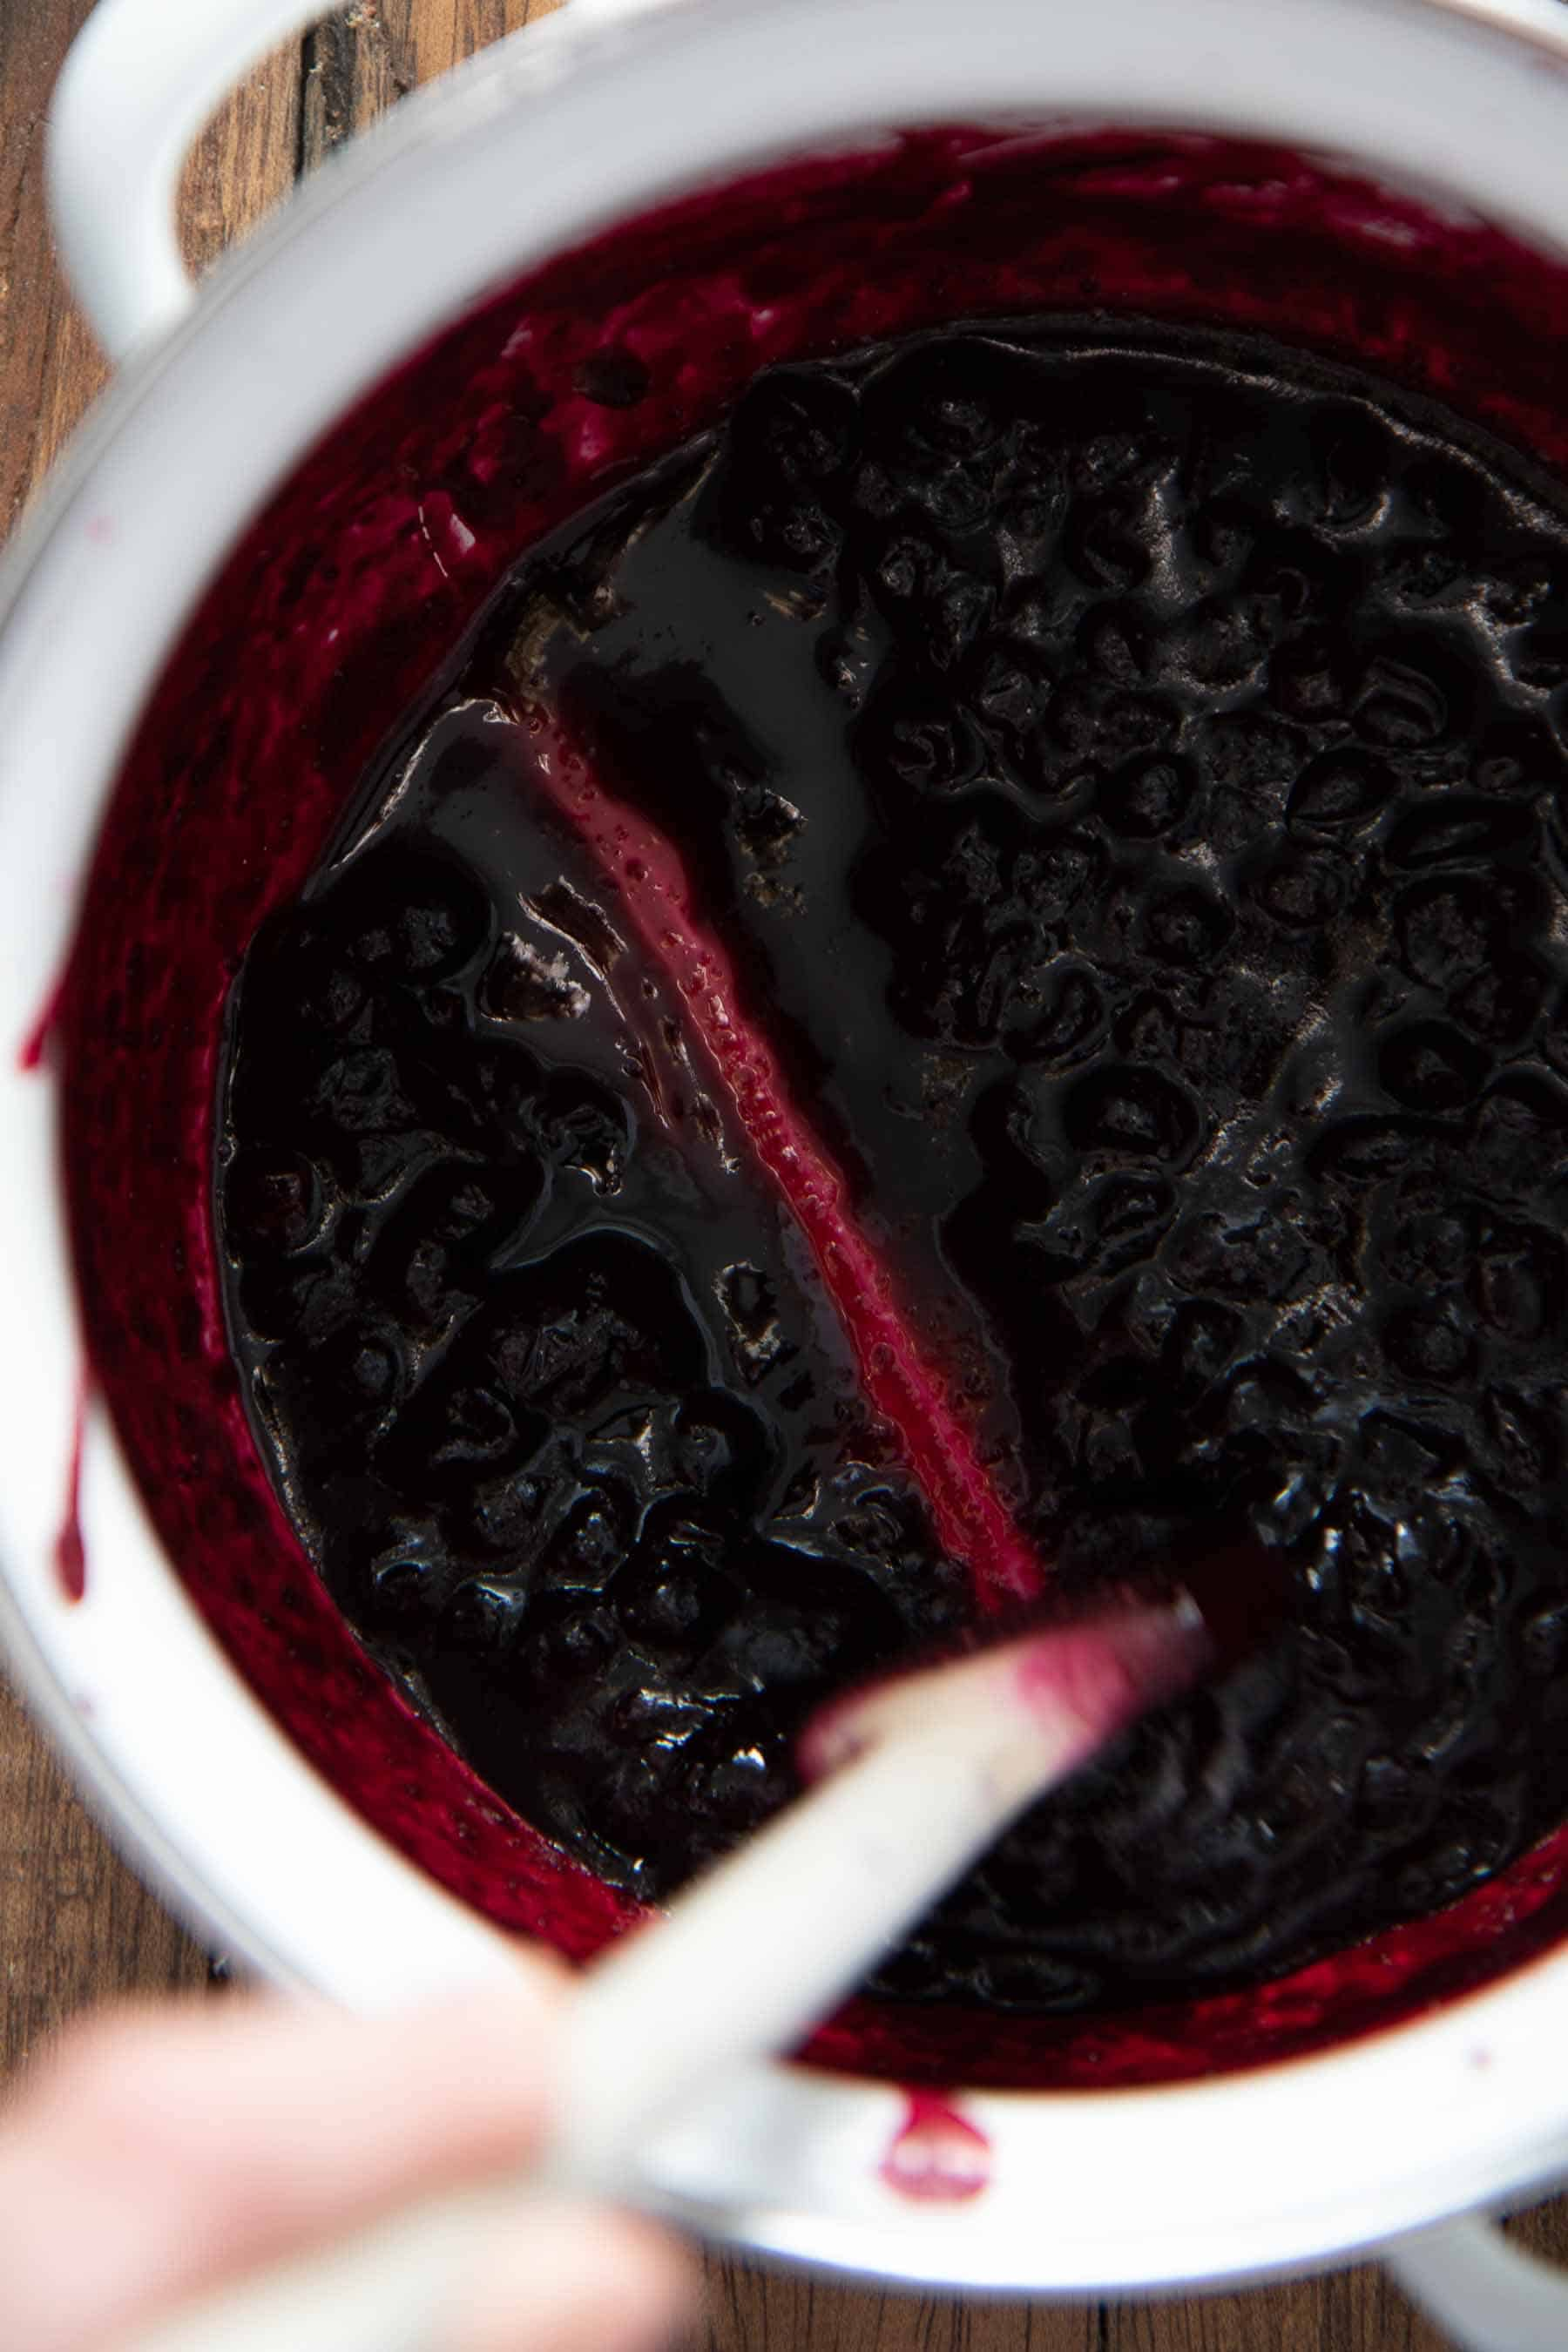 Cooled blueberry sauce